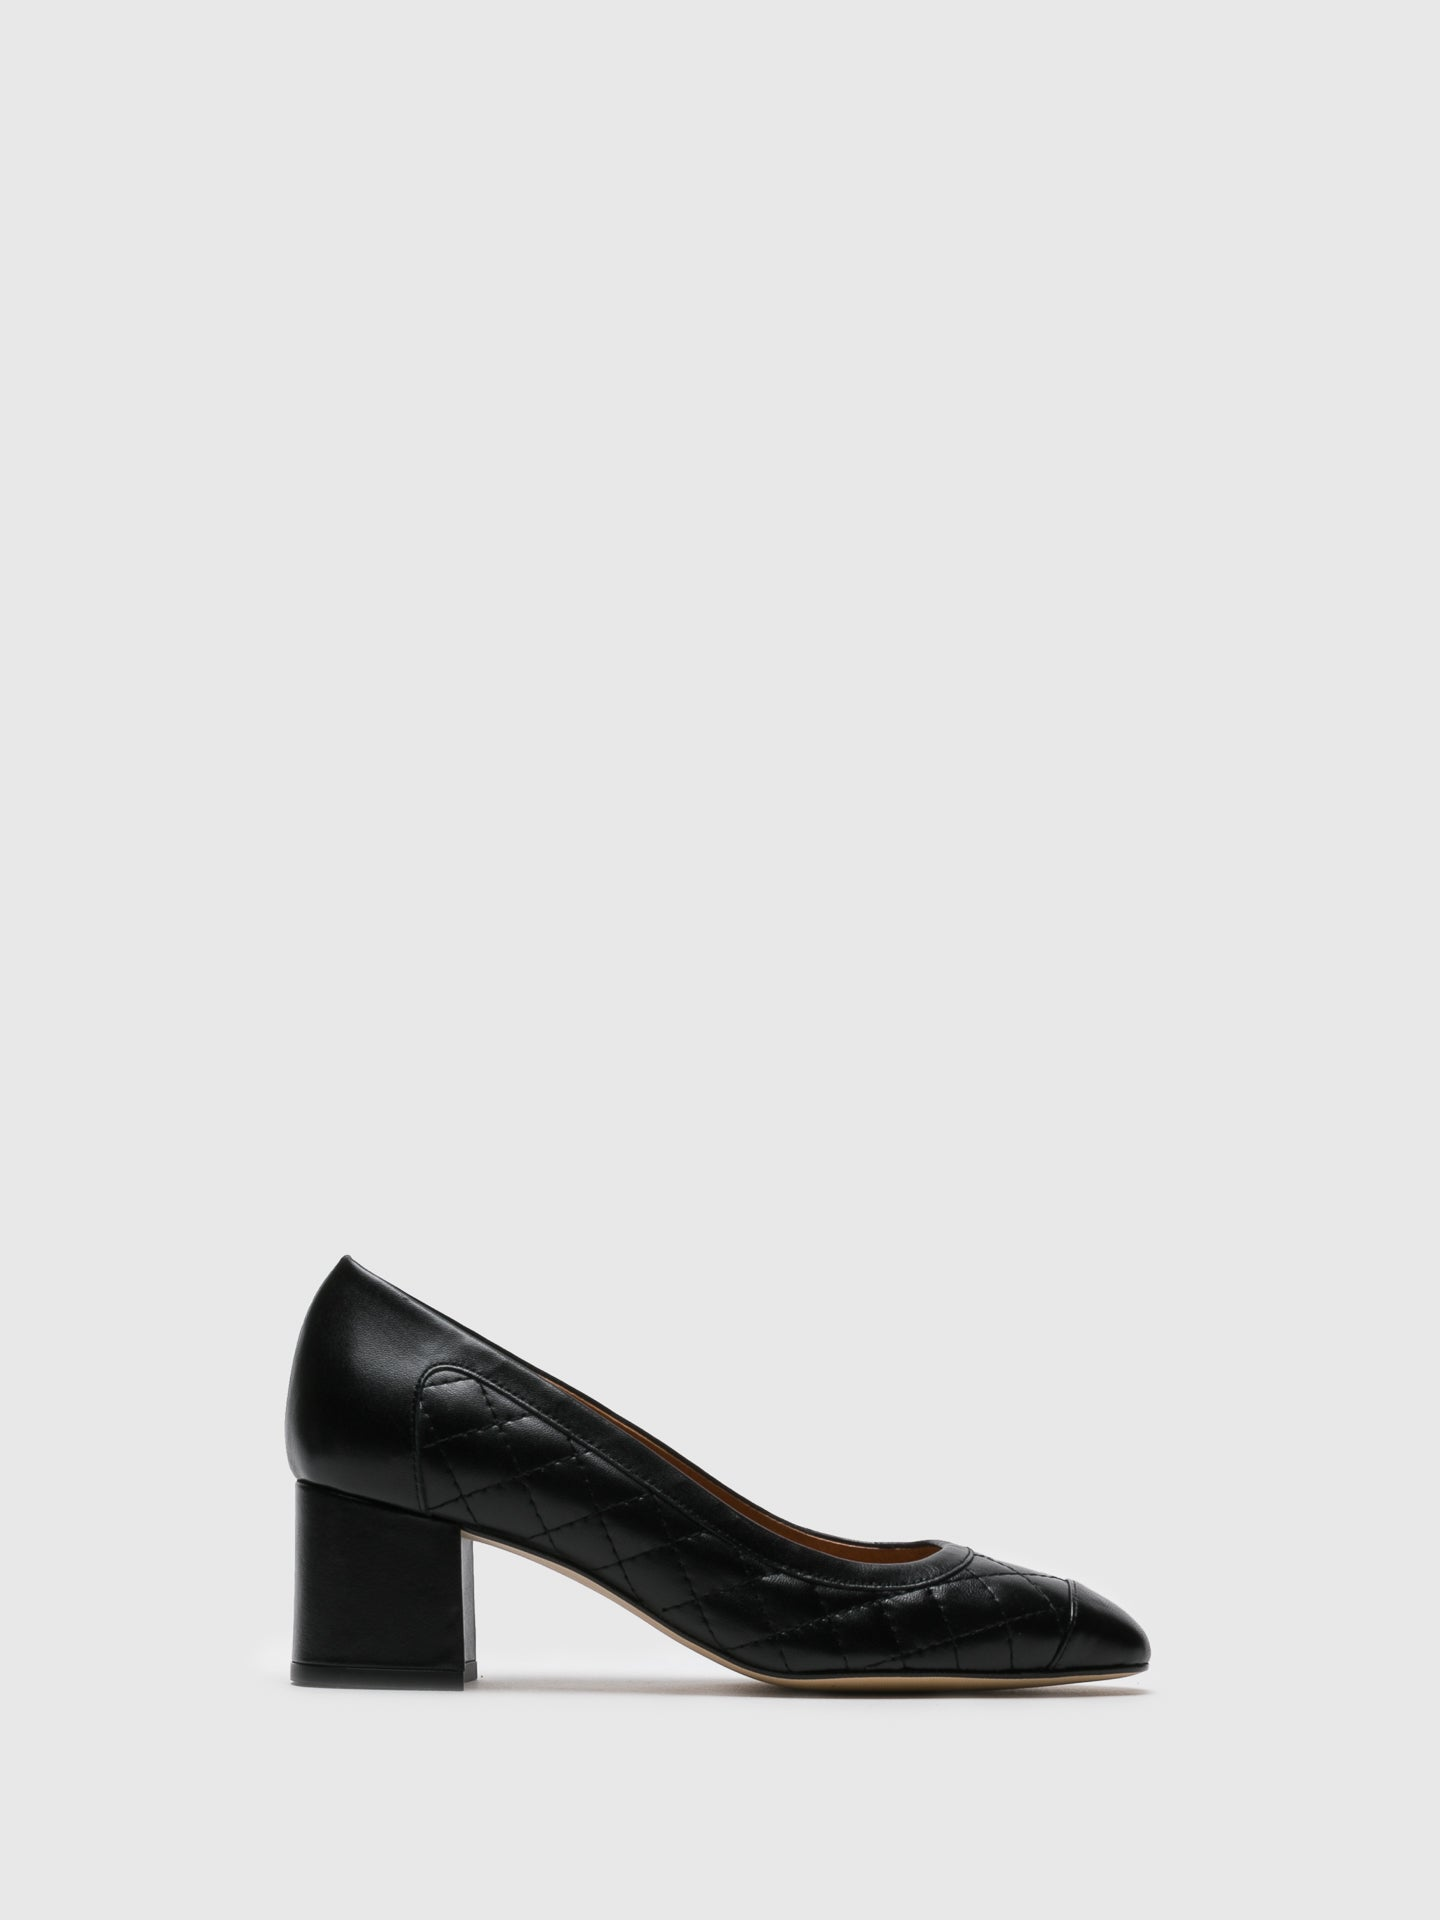 Sofia Costa Black Round Toe Shoes